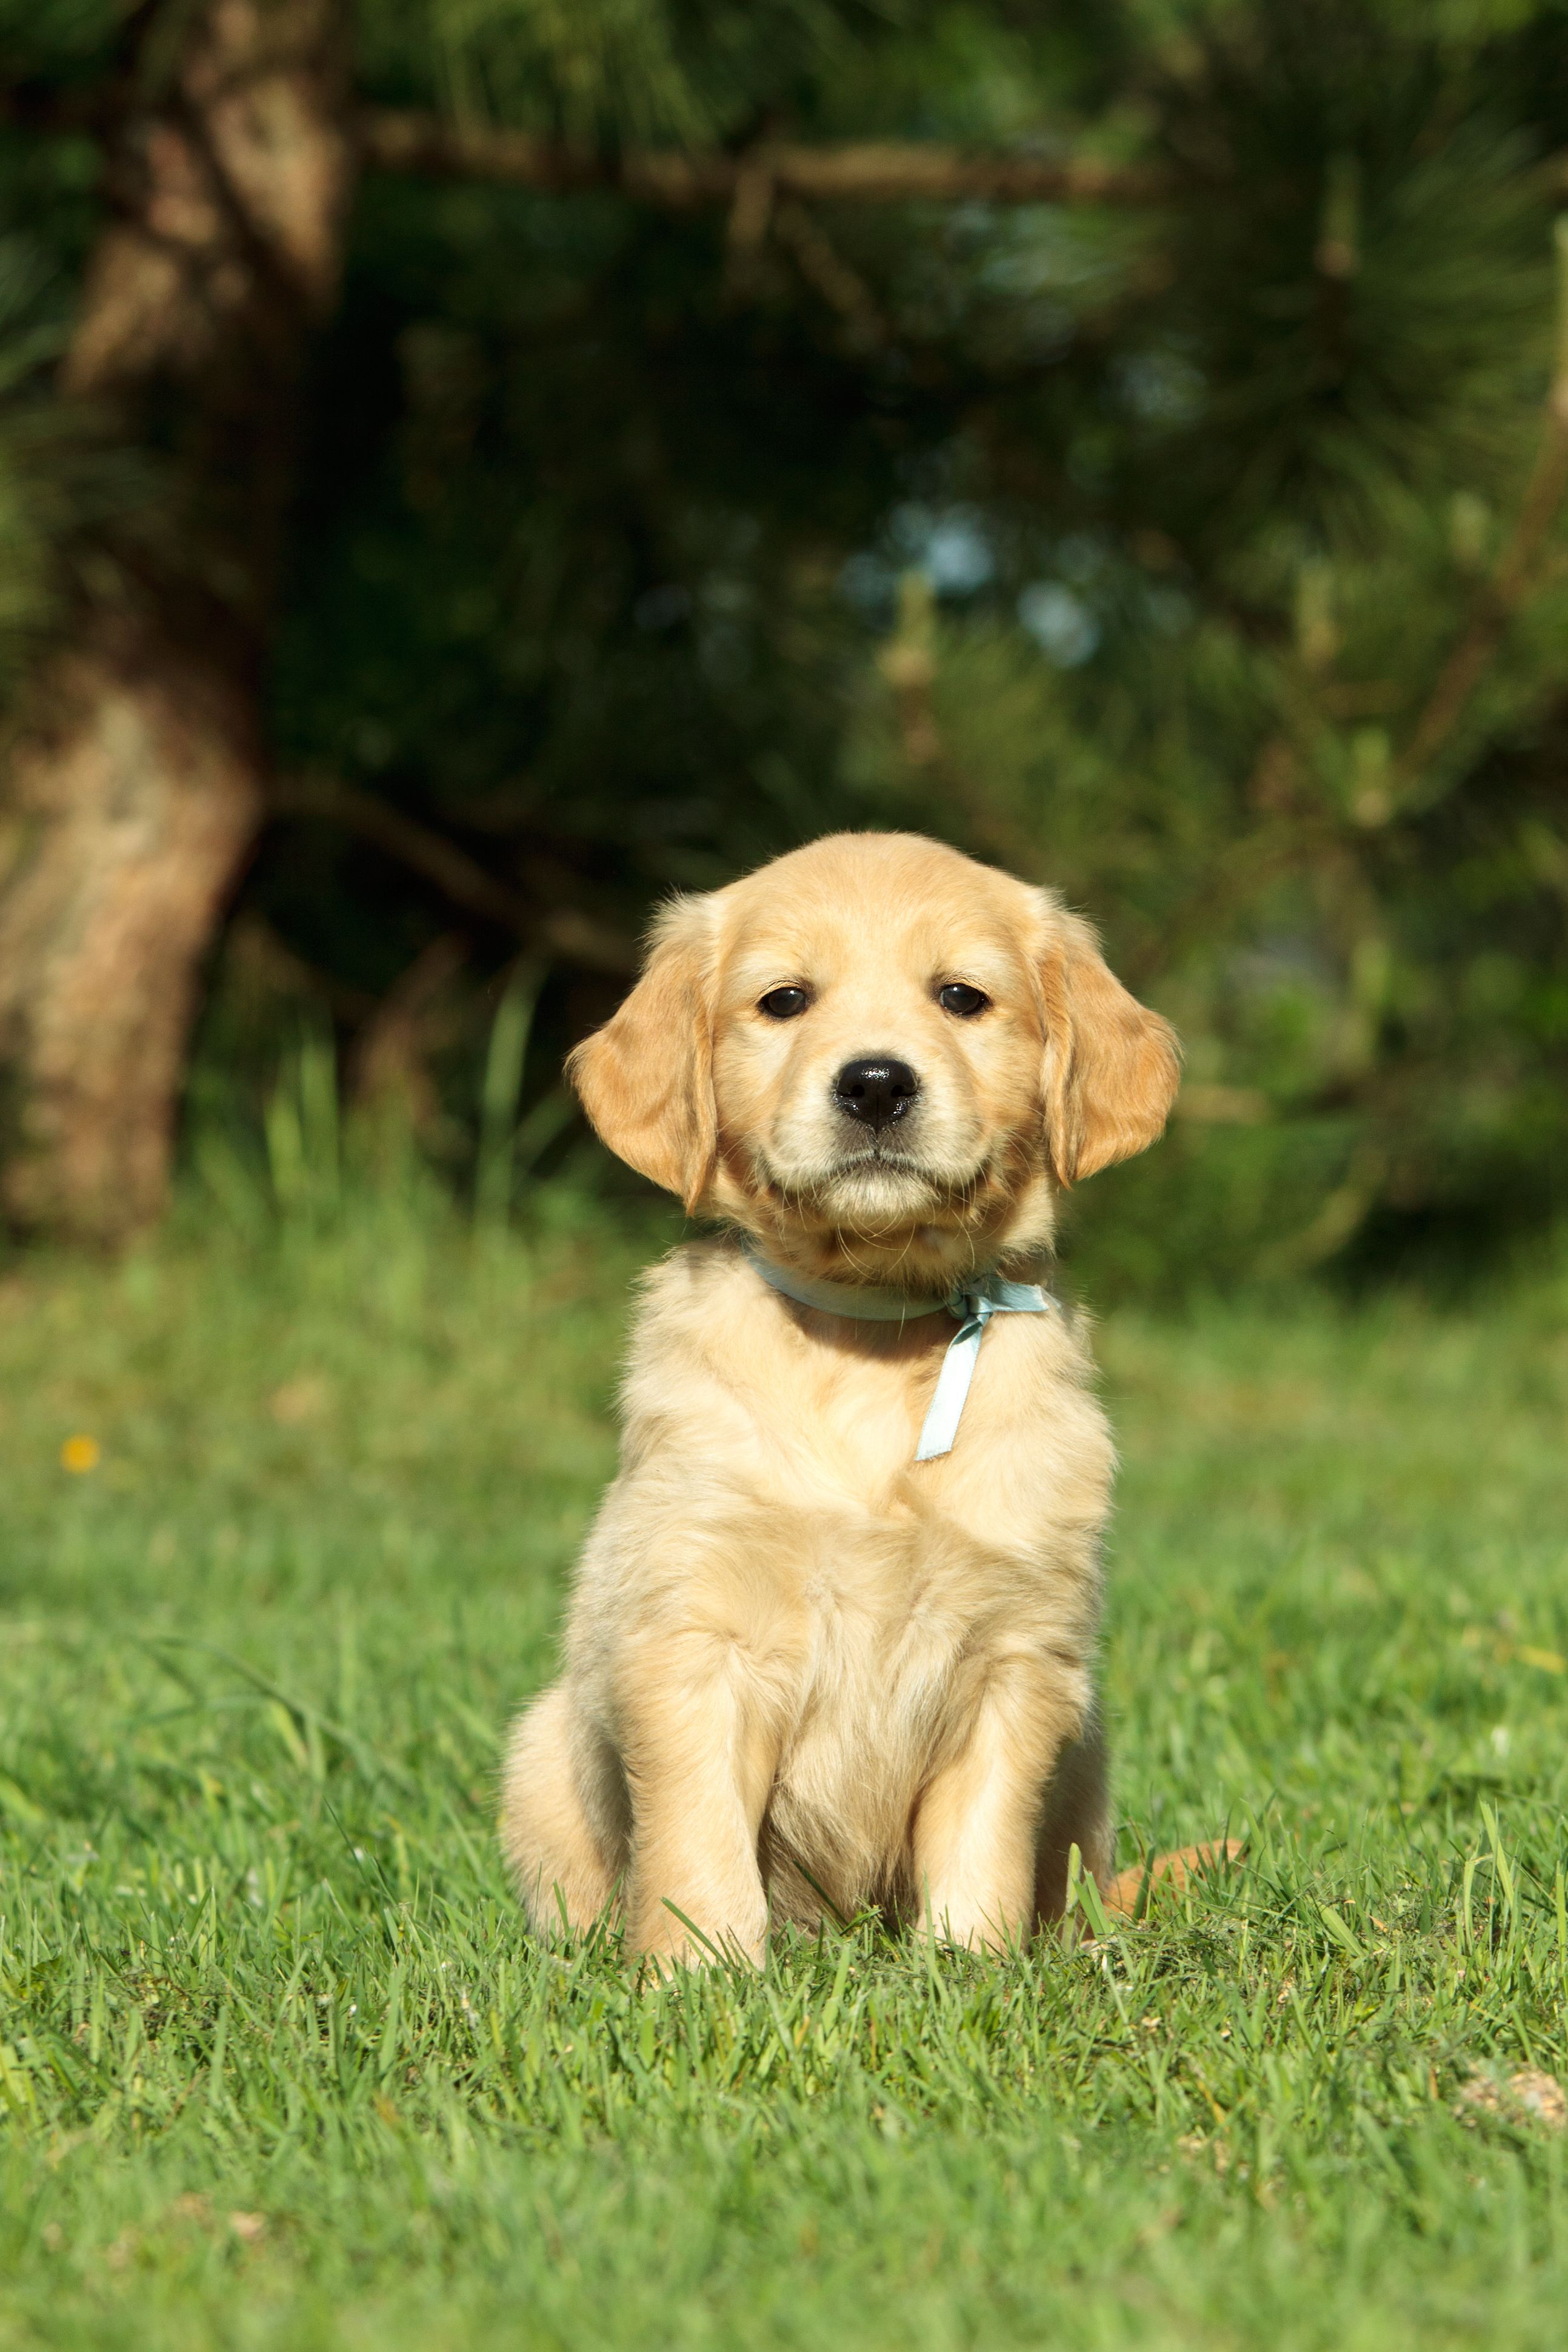 The cutest dogs in the world deserves perfectly cut synthetic grass to play on!